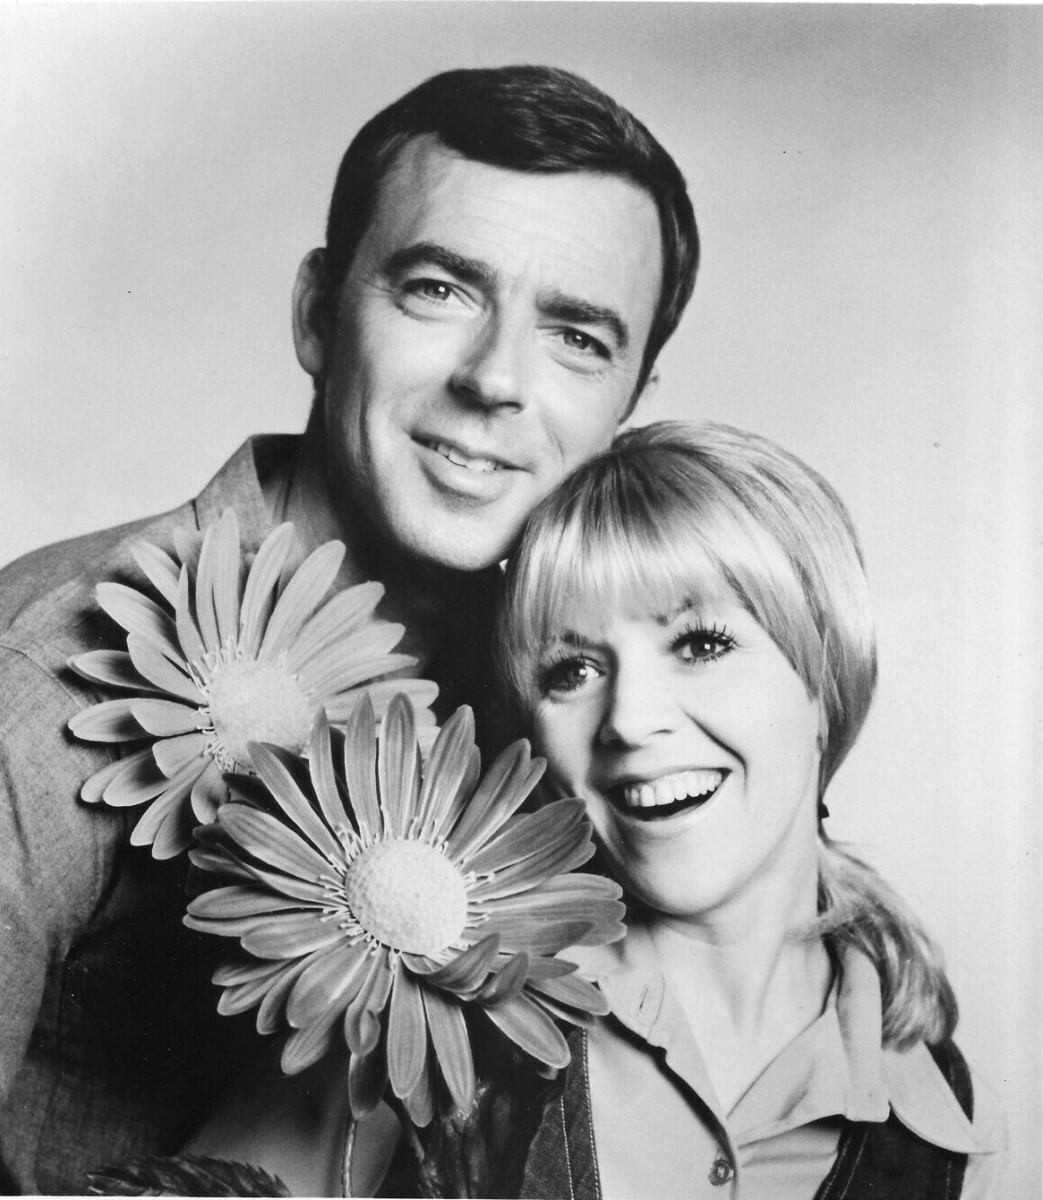 Ken with his co star in Mayberry, RFD, Arlene-Golonka